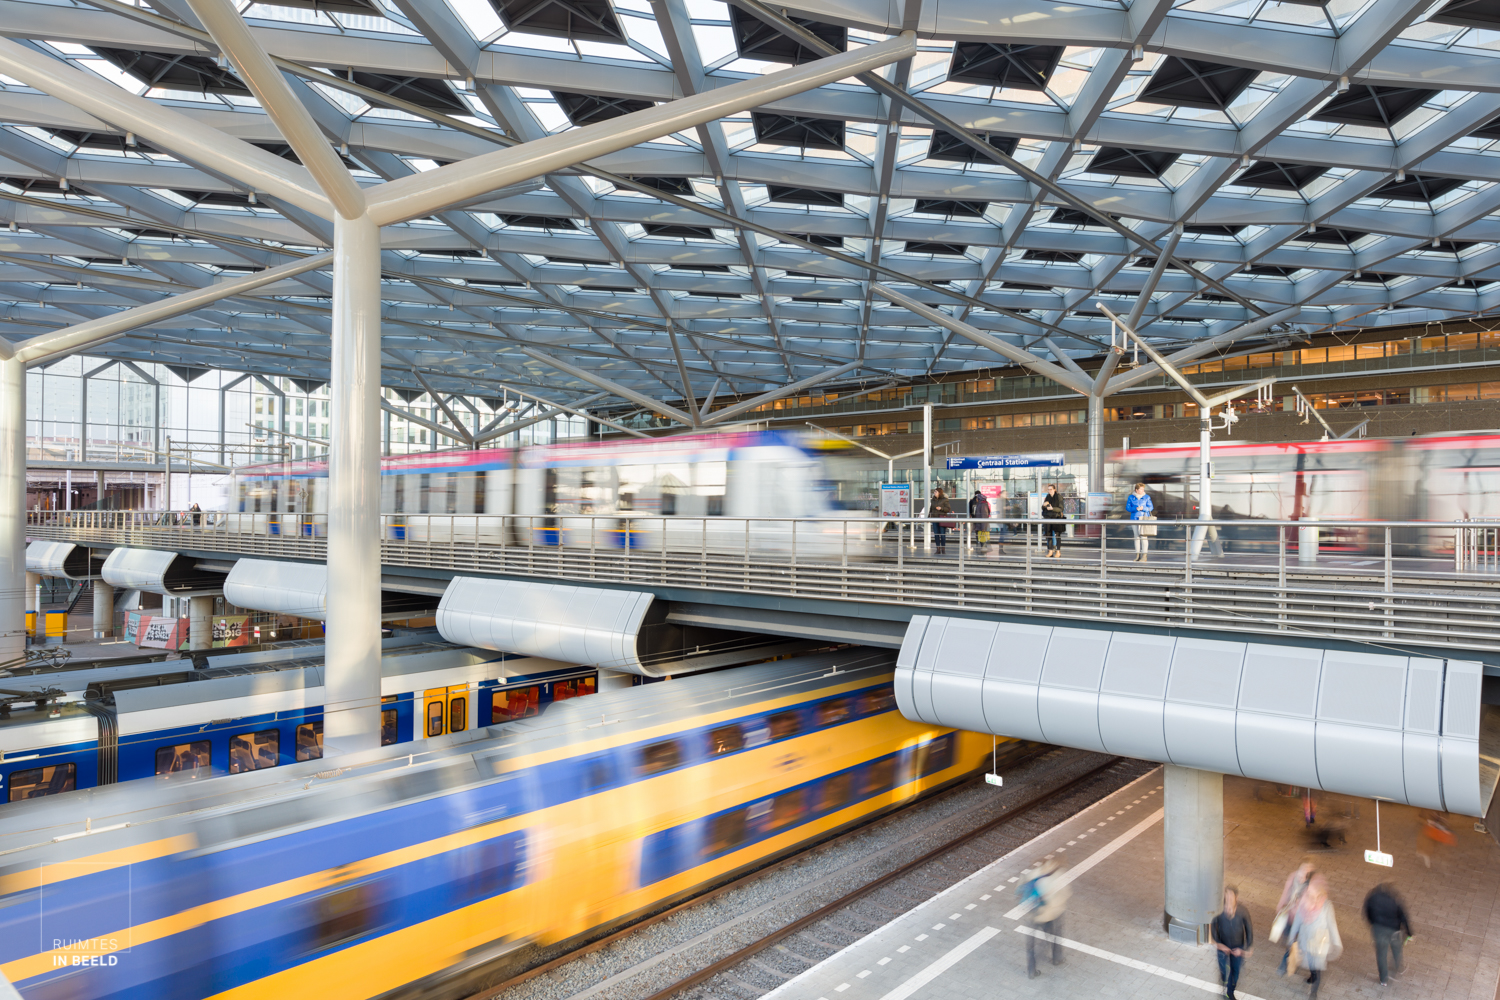 Dynamisch beeld van het vernieuwde Centraal Station in Den Haag | Dynamic image of the renewed Central Station in The Hague, Netherlands